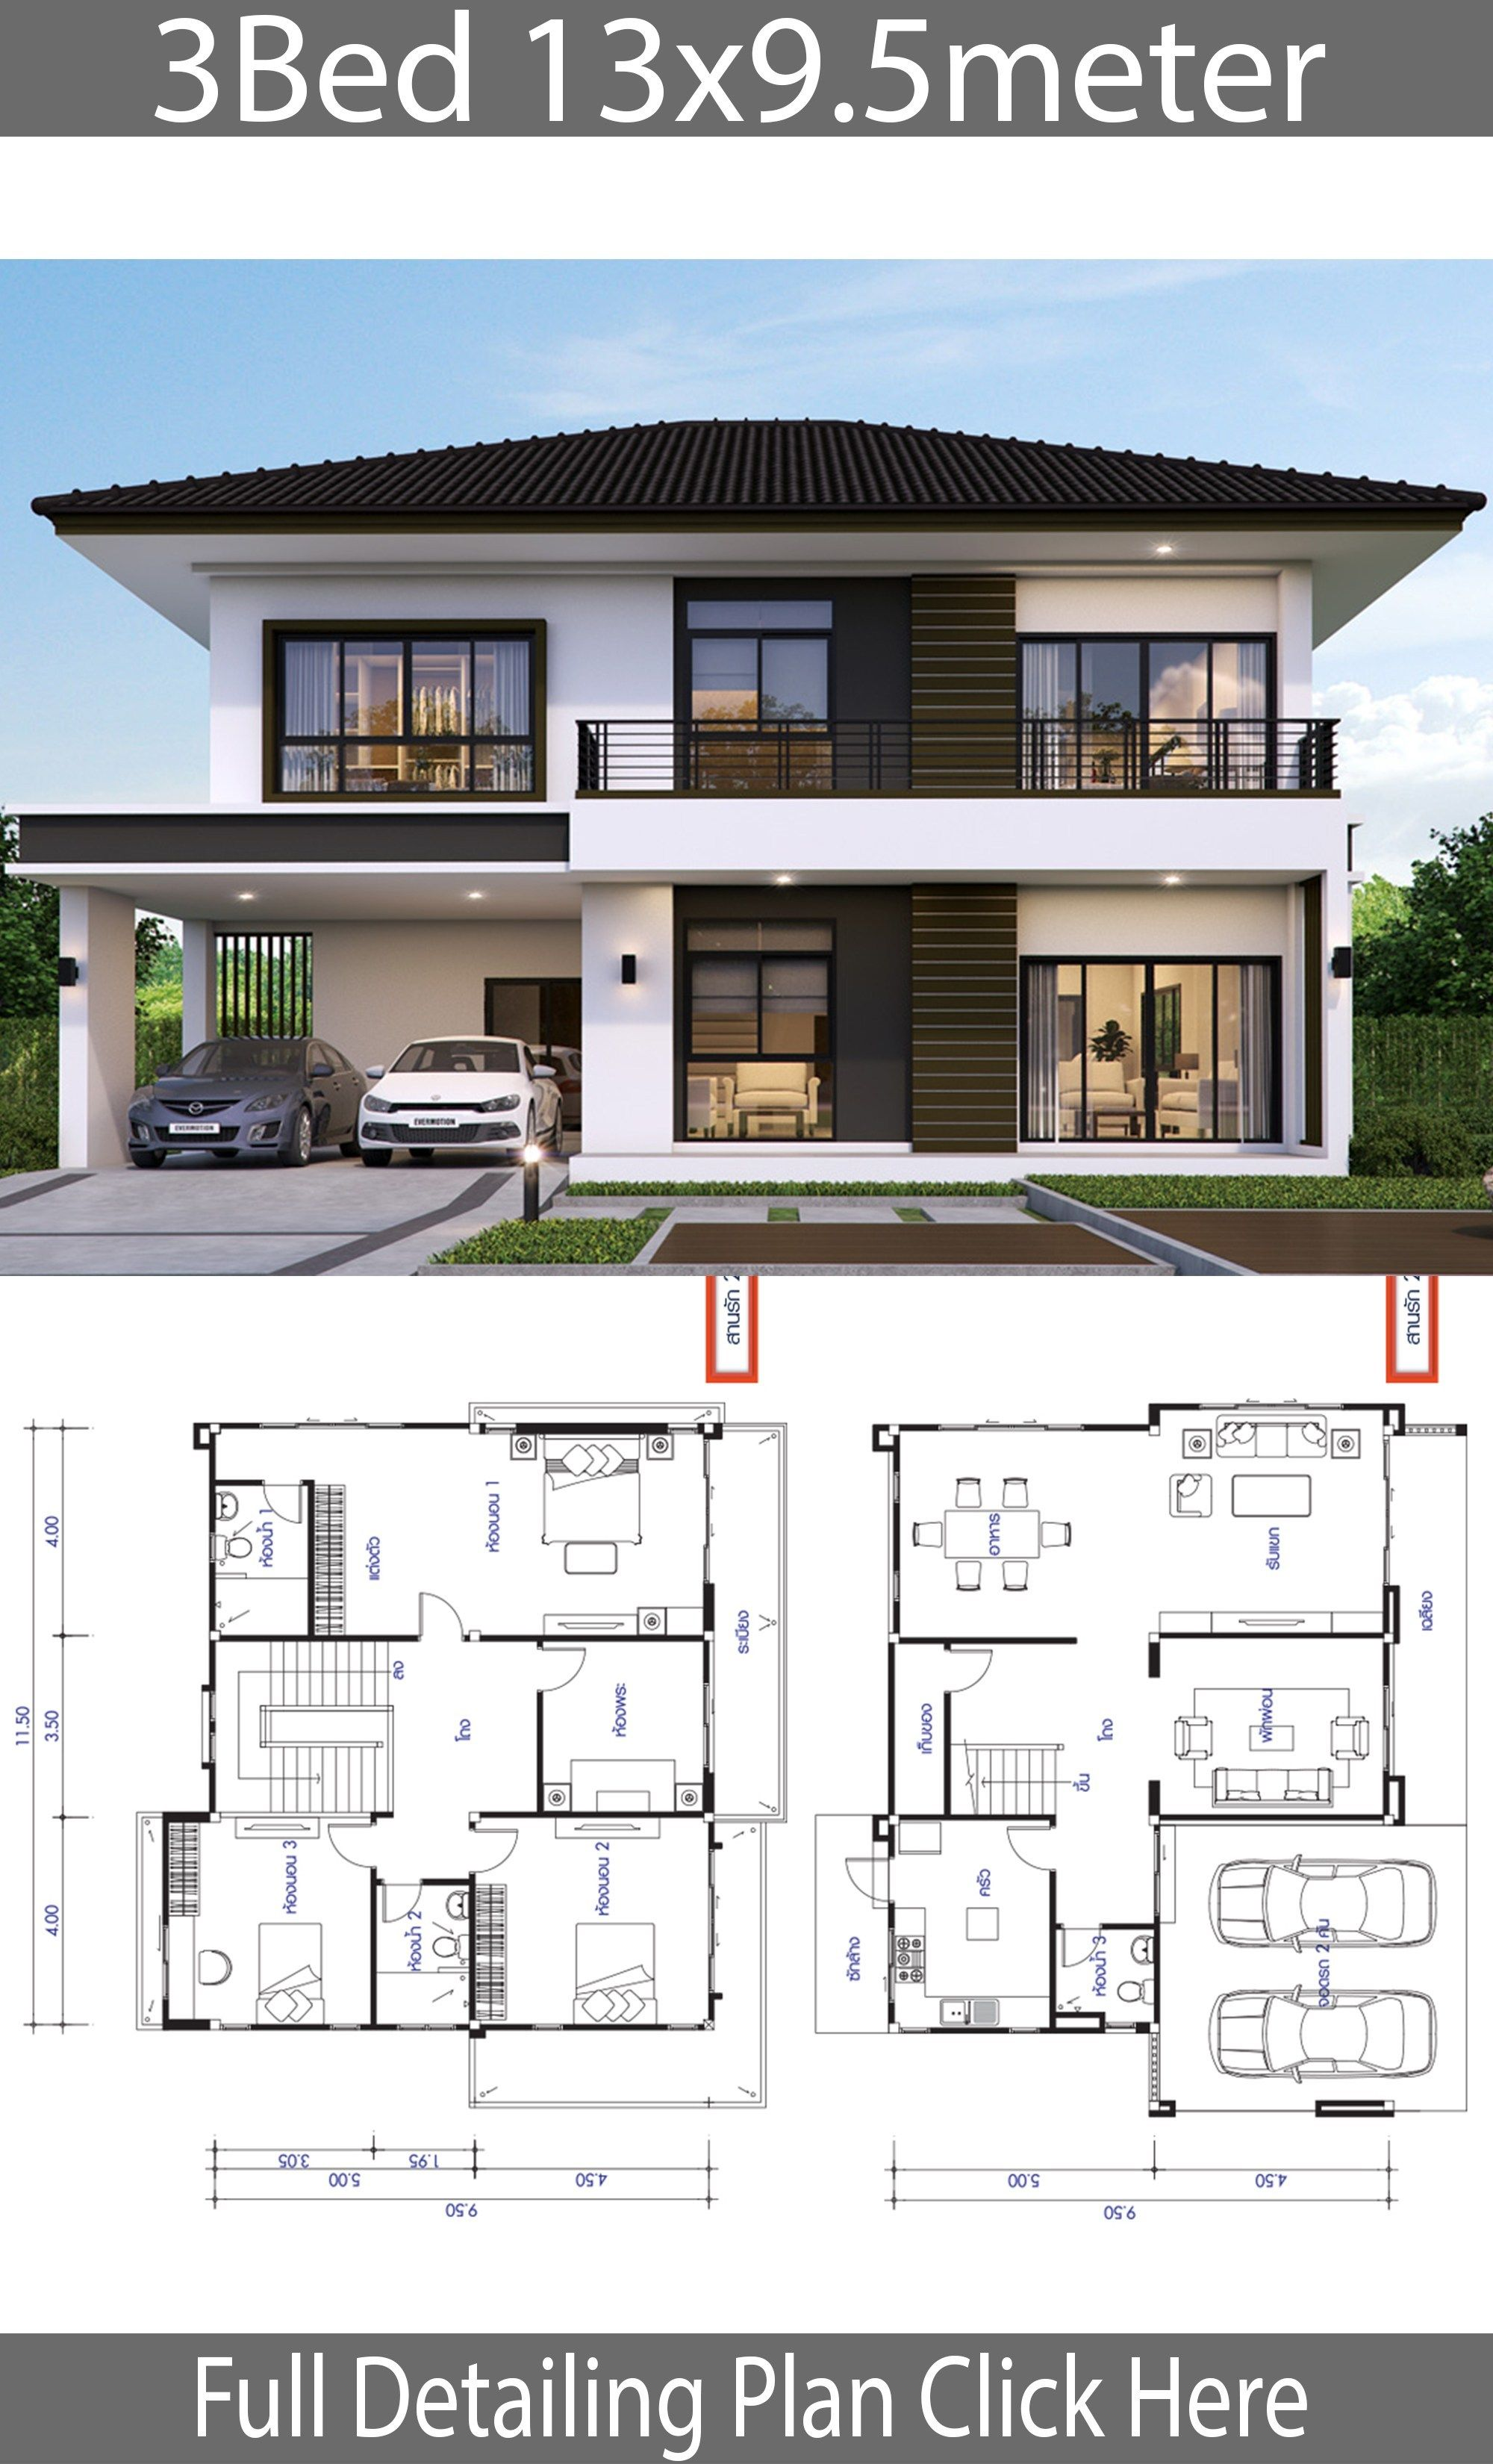 House design plan 13x9.5m with 3 bedrooms | House designs ...